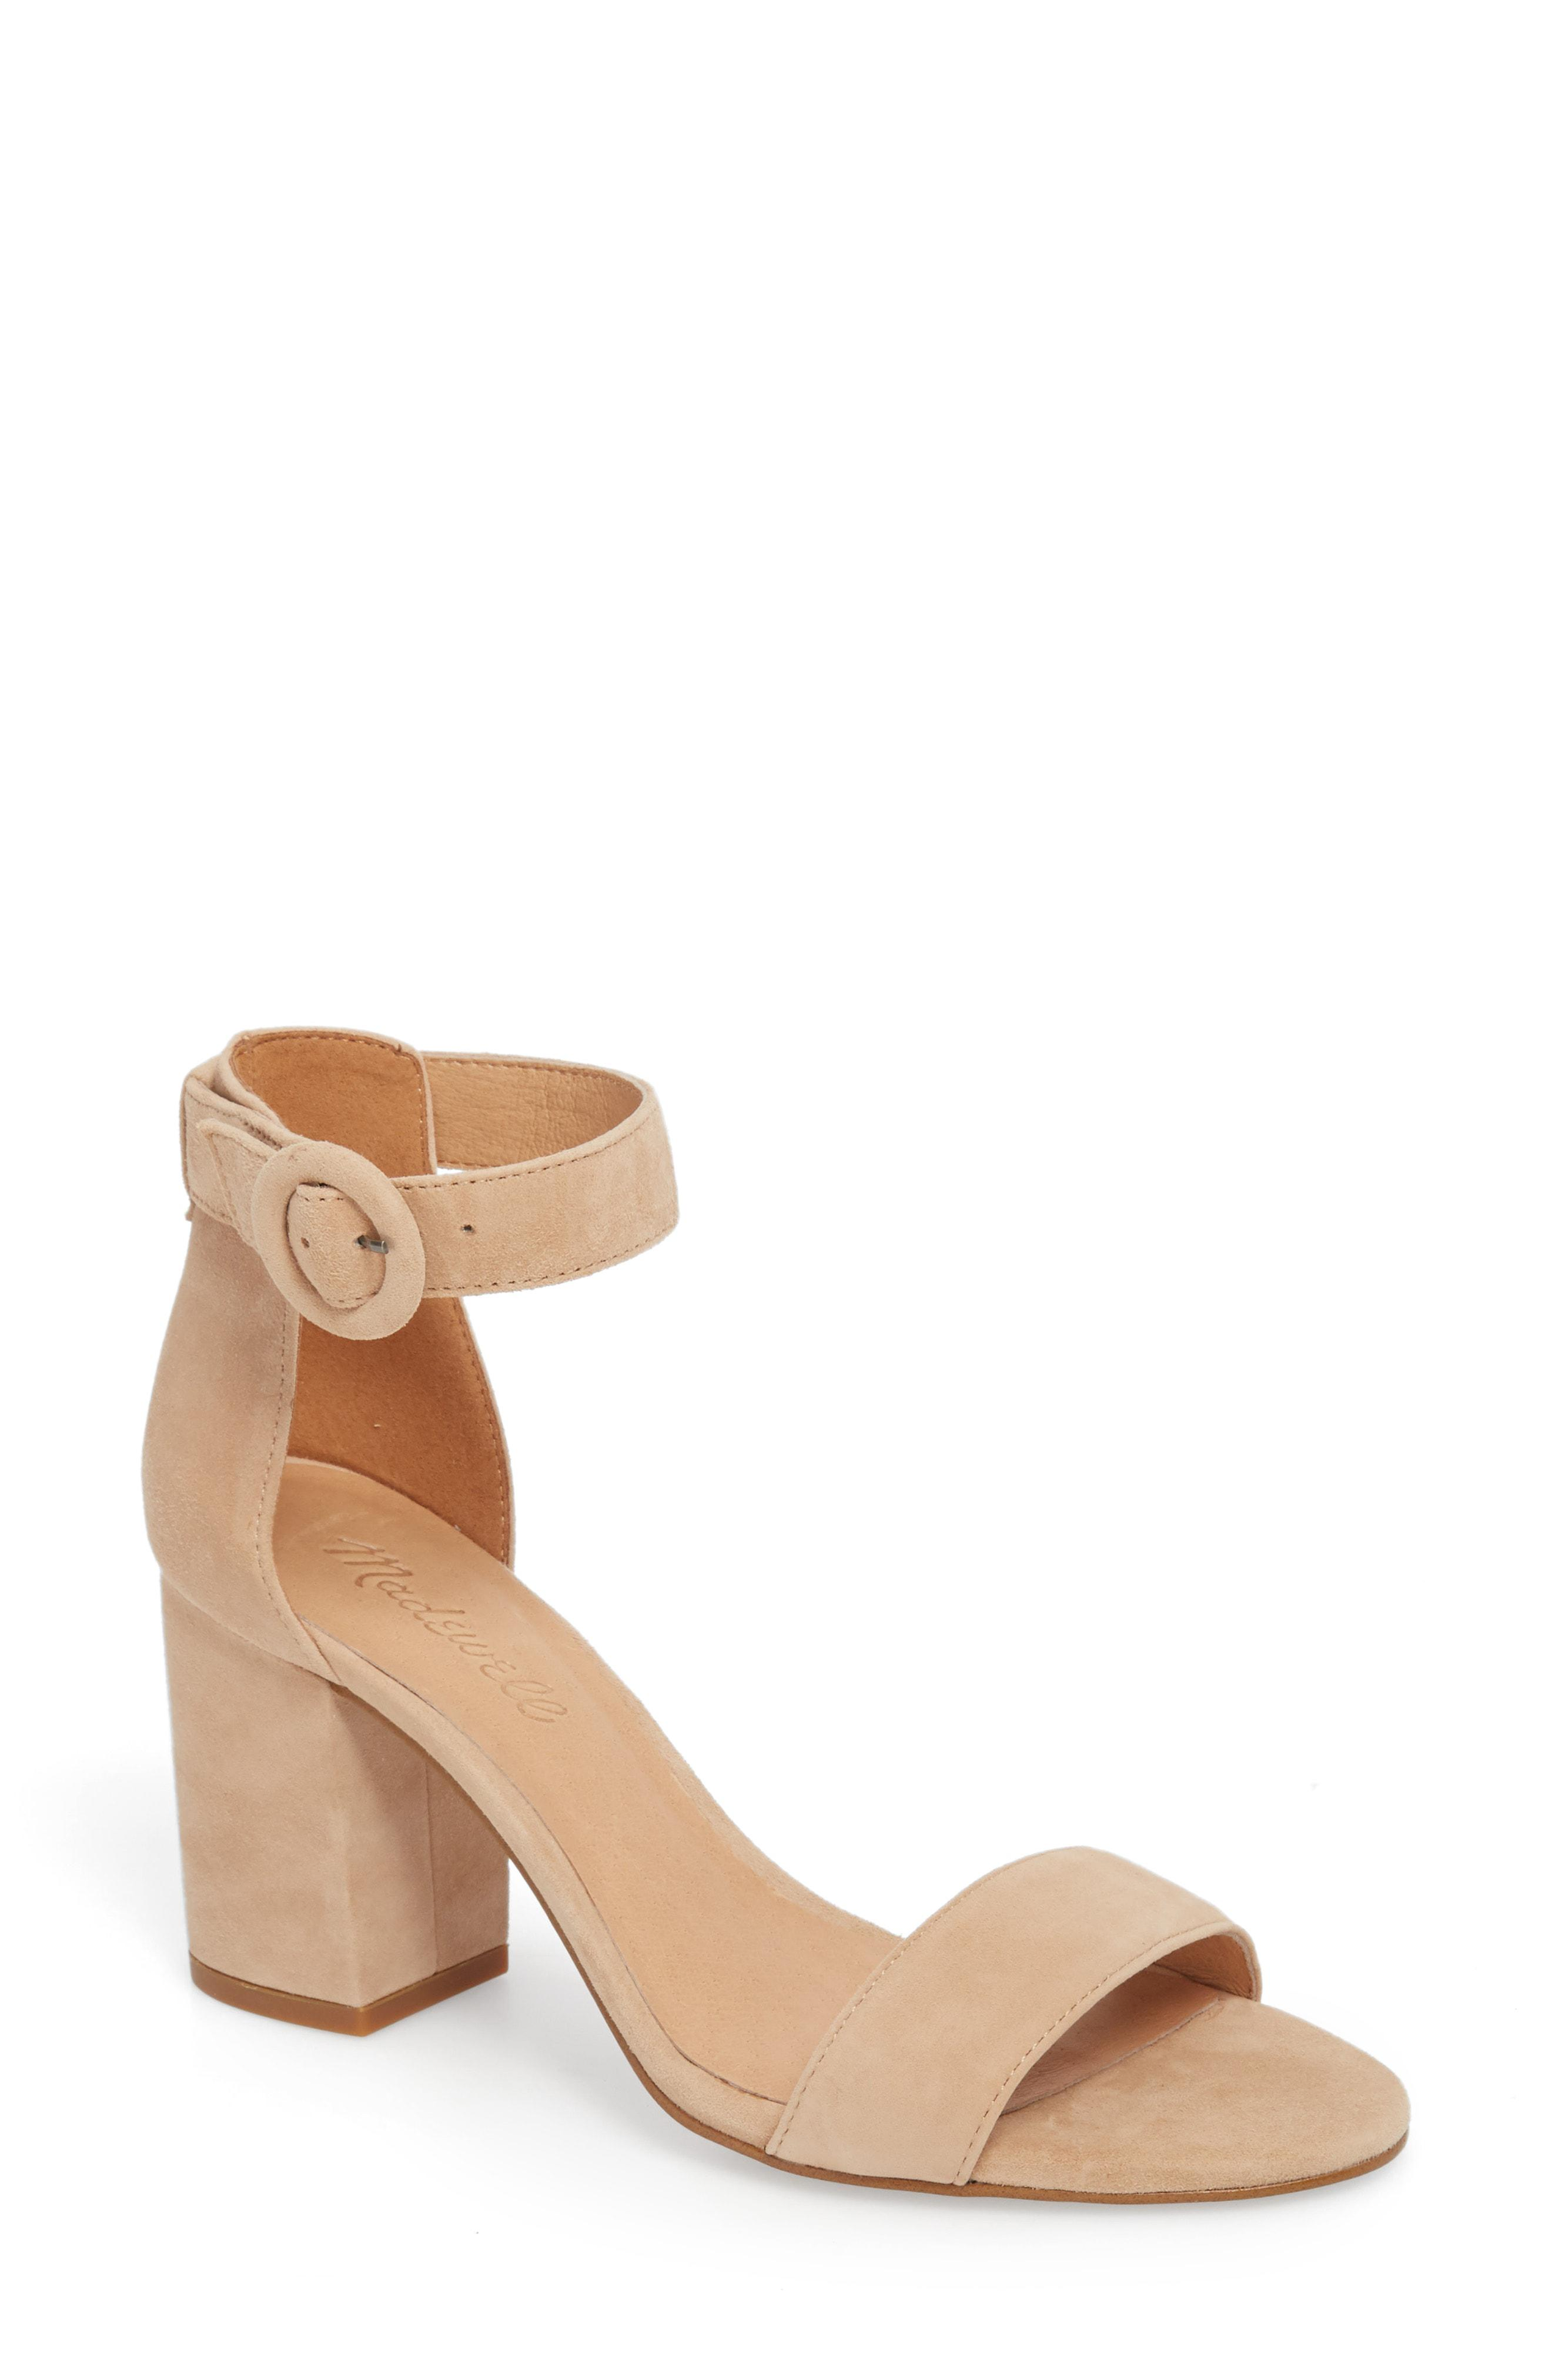 94894b083f5 Lyst - Madewell The Regina Ankle Strap Sandal